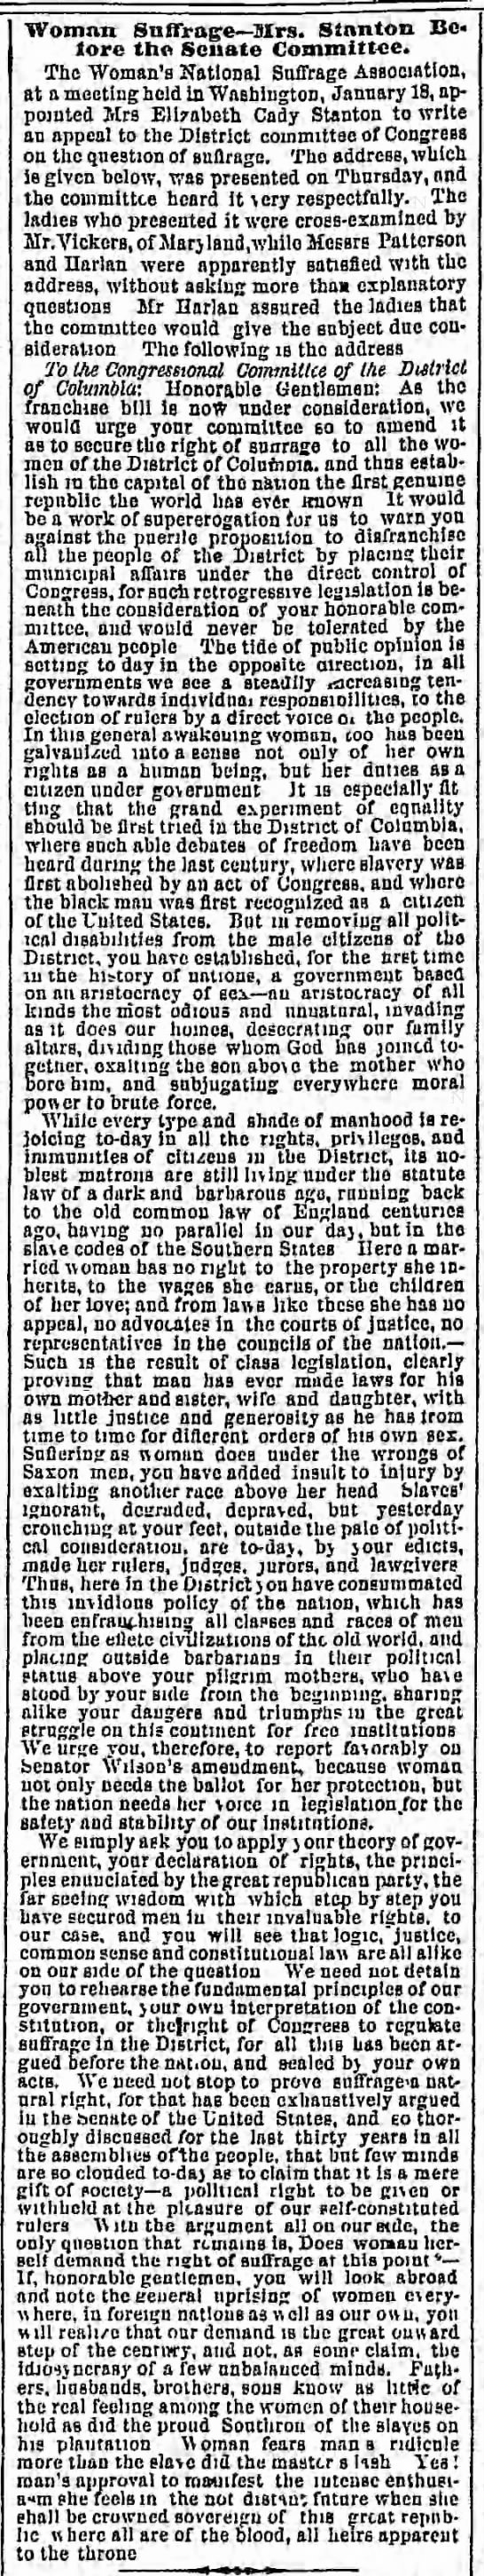 Elizabeth Cady Stanton addresses the Congressional Committee of the District of Columbia in 1869. -